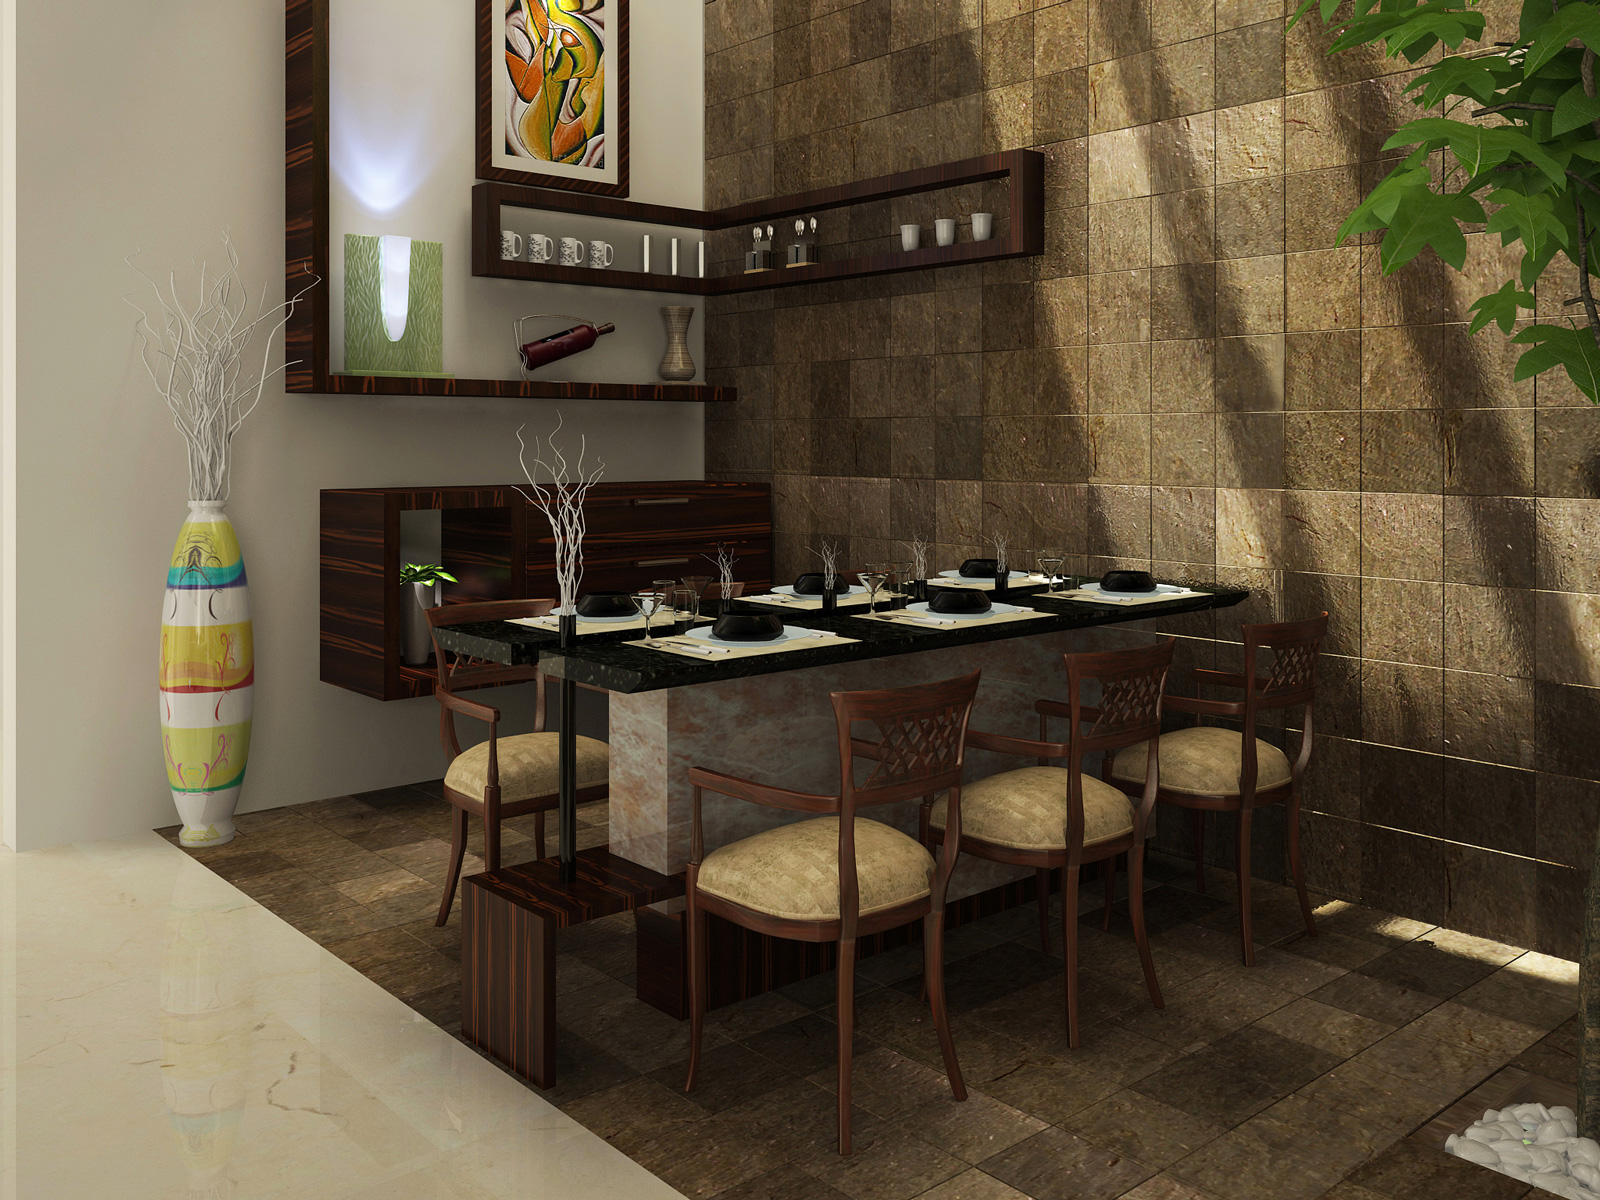 Kerala dining room design style photos home interior in india for Interior design for hall and dining room